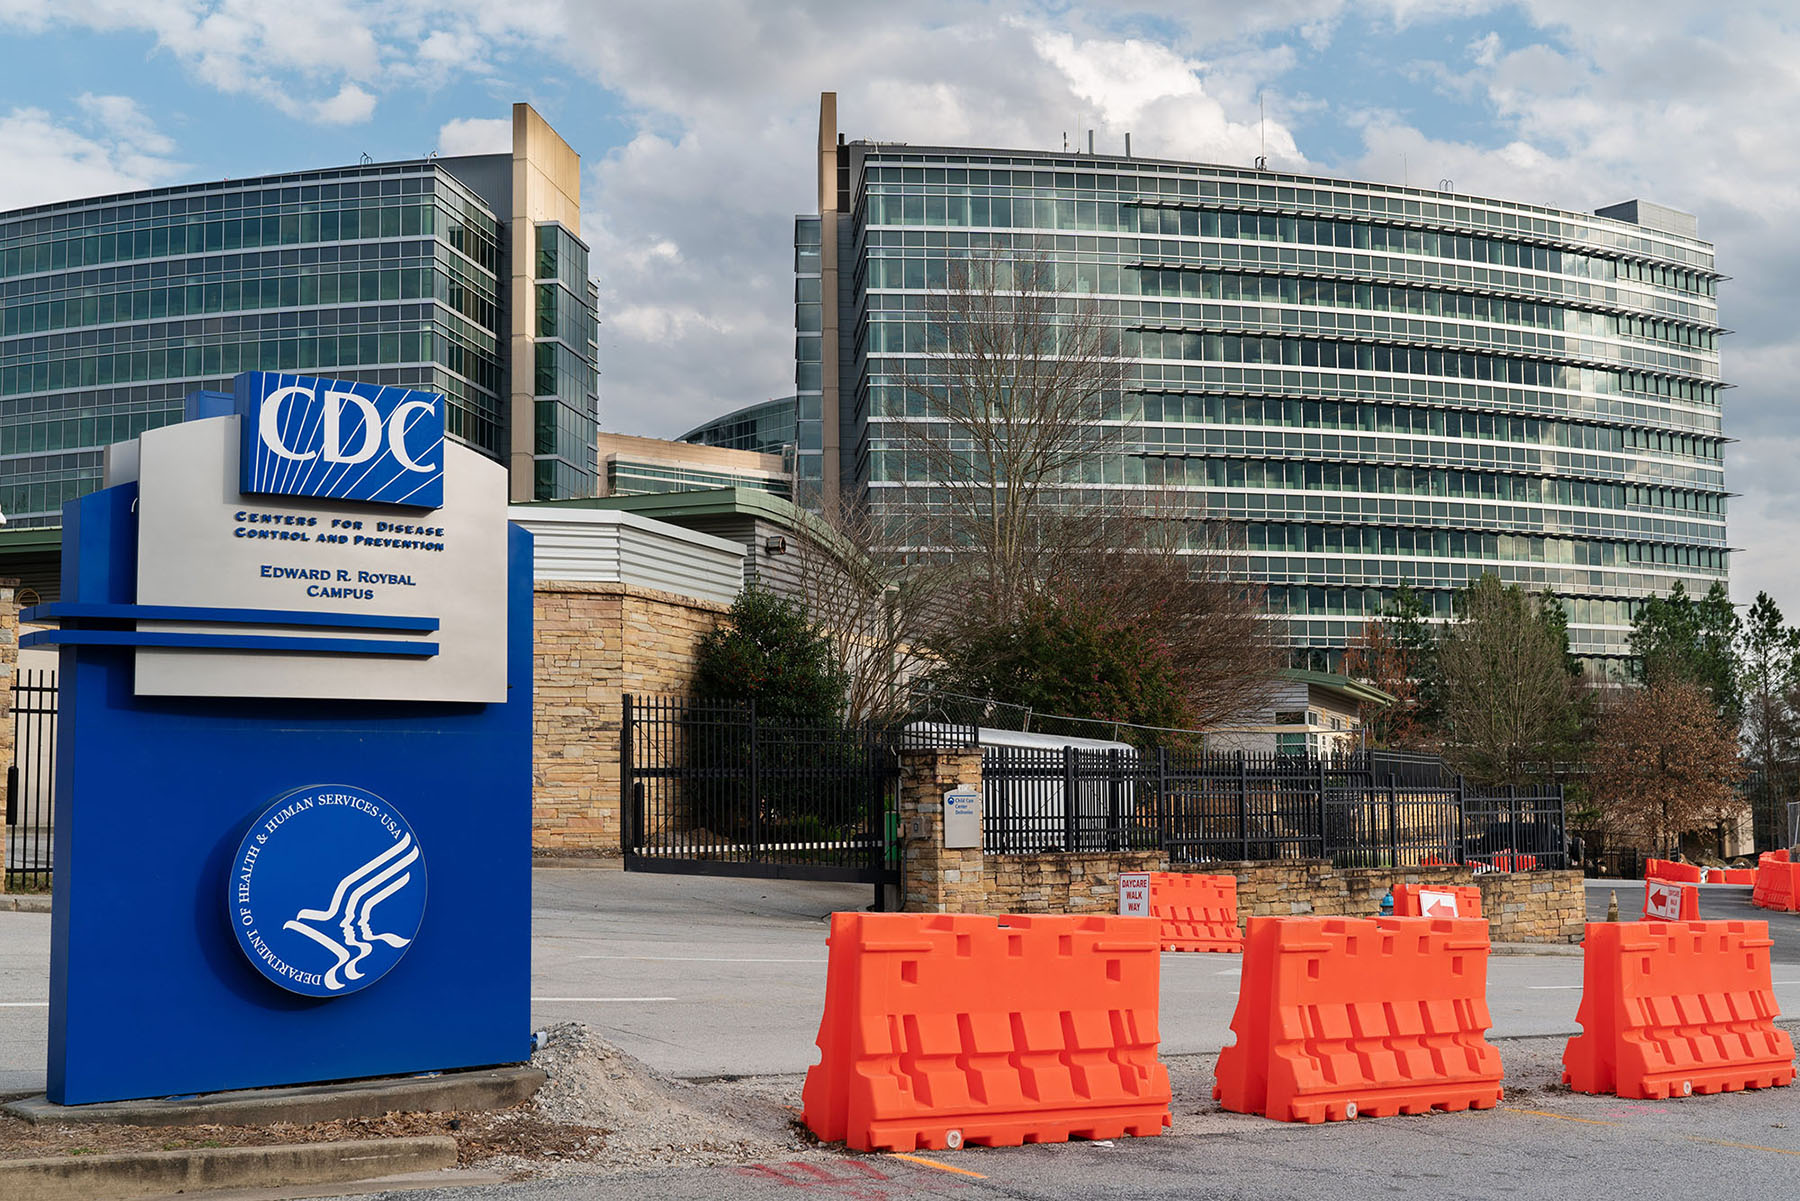 The Centers for Disease Control and Prevention (CDC) headquarters in Atlanta, Georgia, on Saturday, March 14, 2020.